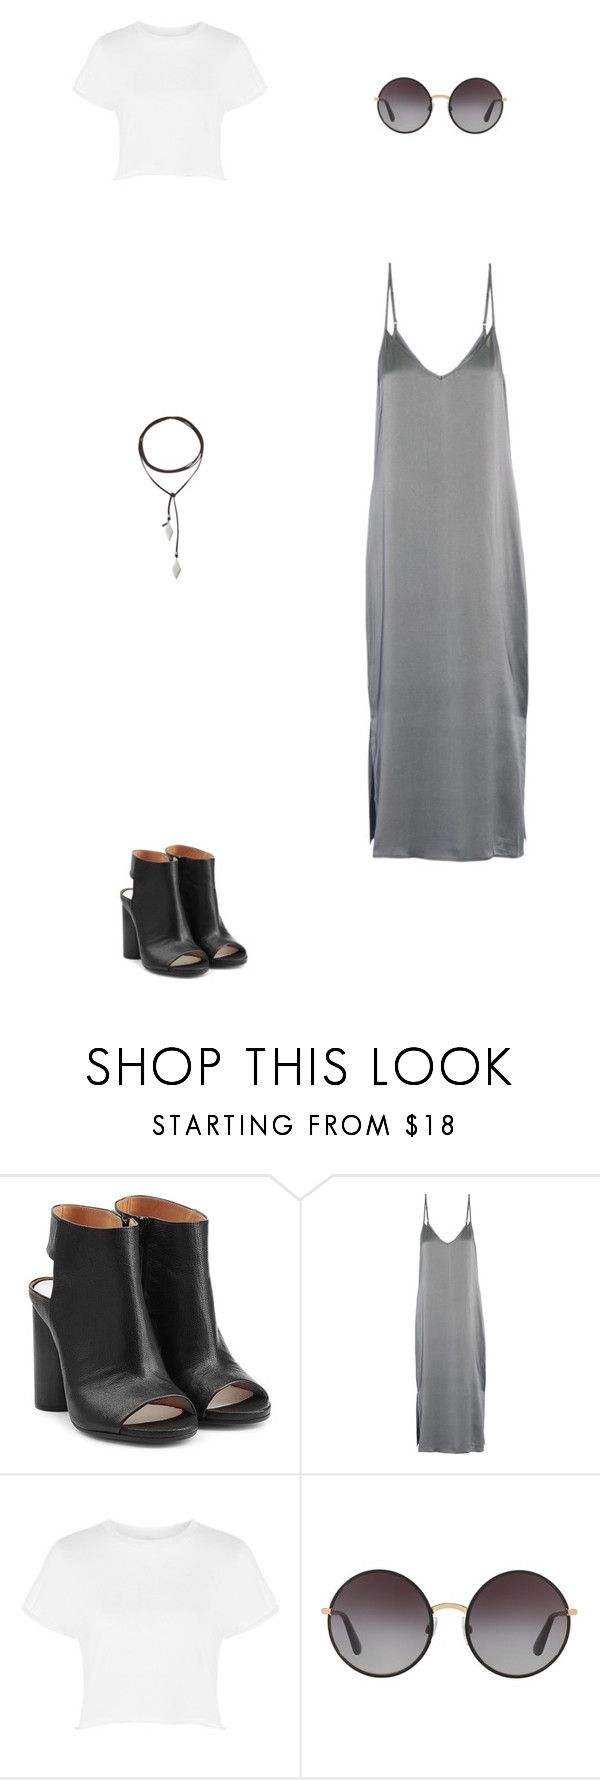 """""""Zoo Outfit"""" by lstar237 on Polyvore featuring Maison Margiela, Equipment, Topshop, Dolce&Gabbana and Vanessa Mooney"""